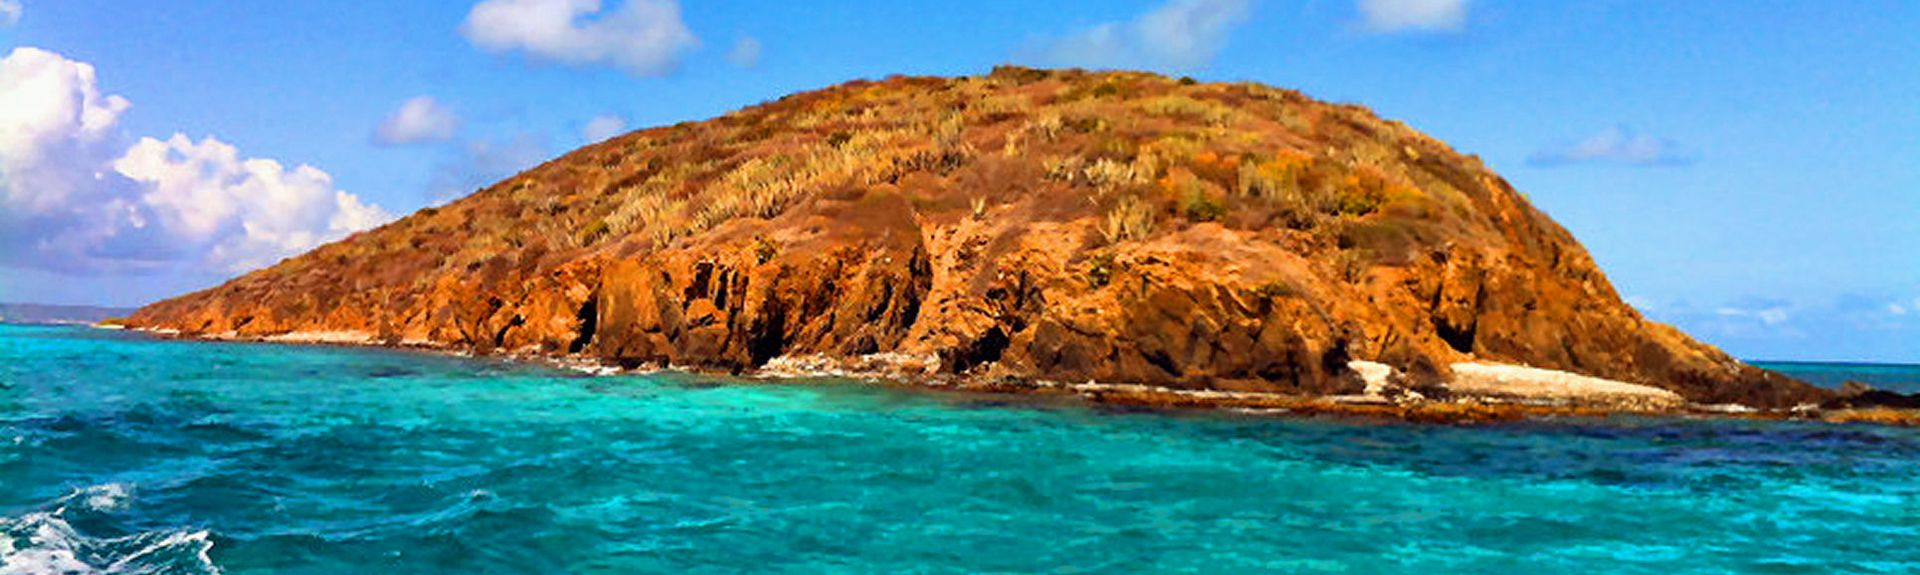 Cane Bay, St. Croix, U.S. Virgin Islands